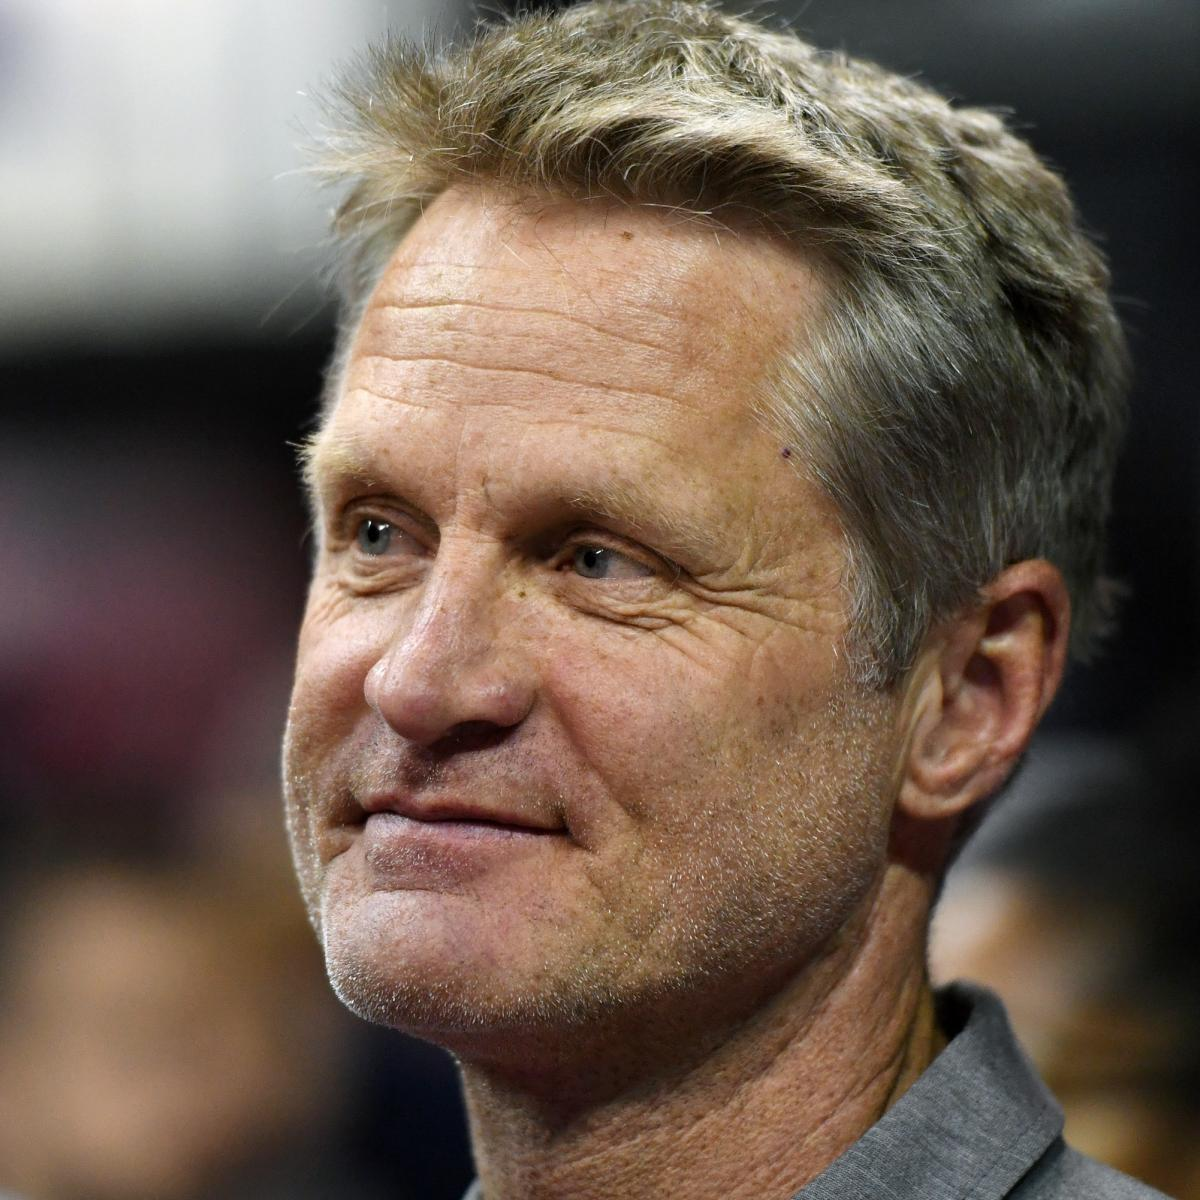 Steve Kerr Writes Article to Donald Trump, Says Protest Comments 'Crushed' Him